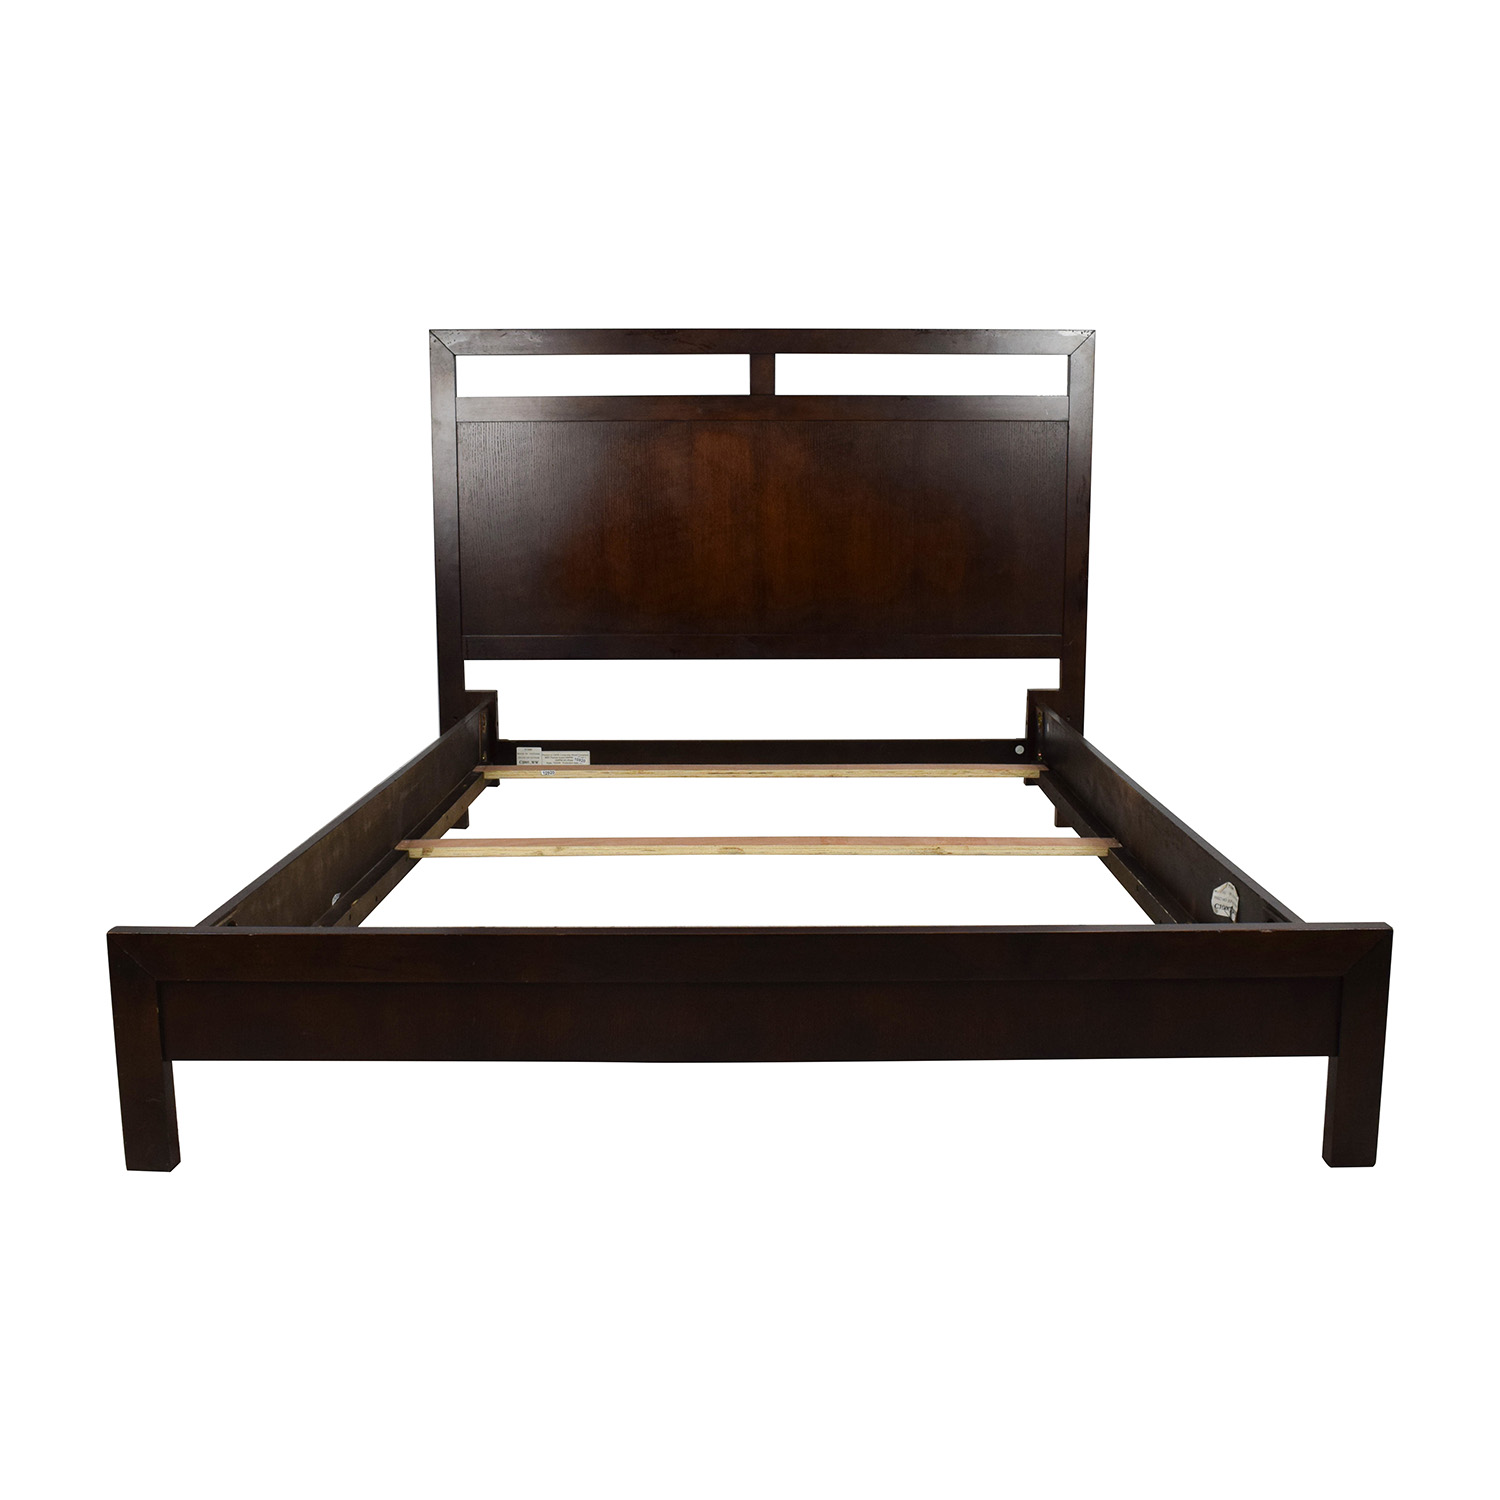 JCPenny Linear JCPenny Linear Full Size Bed on sale